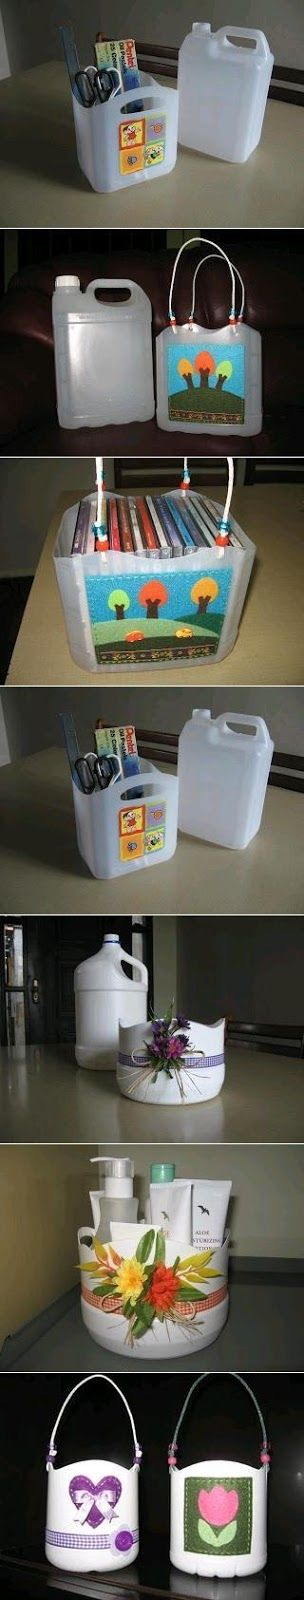 Best 25 Old Milk Jugs Ideas On Pinterest Old Milk Cans